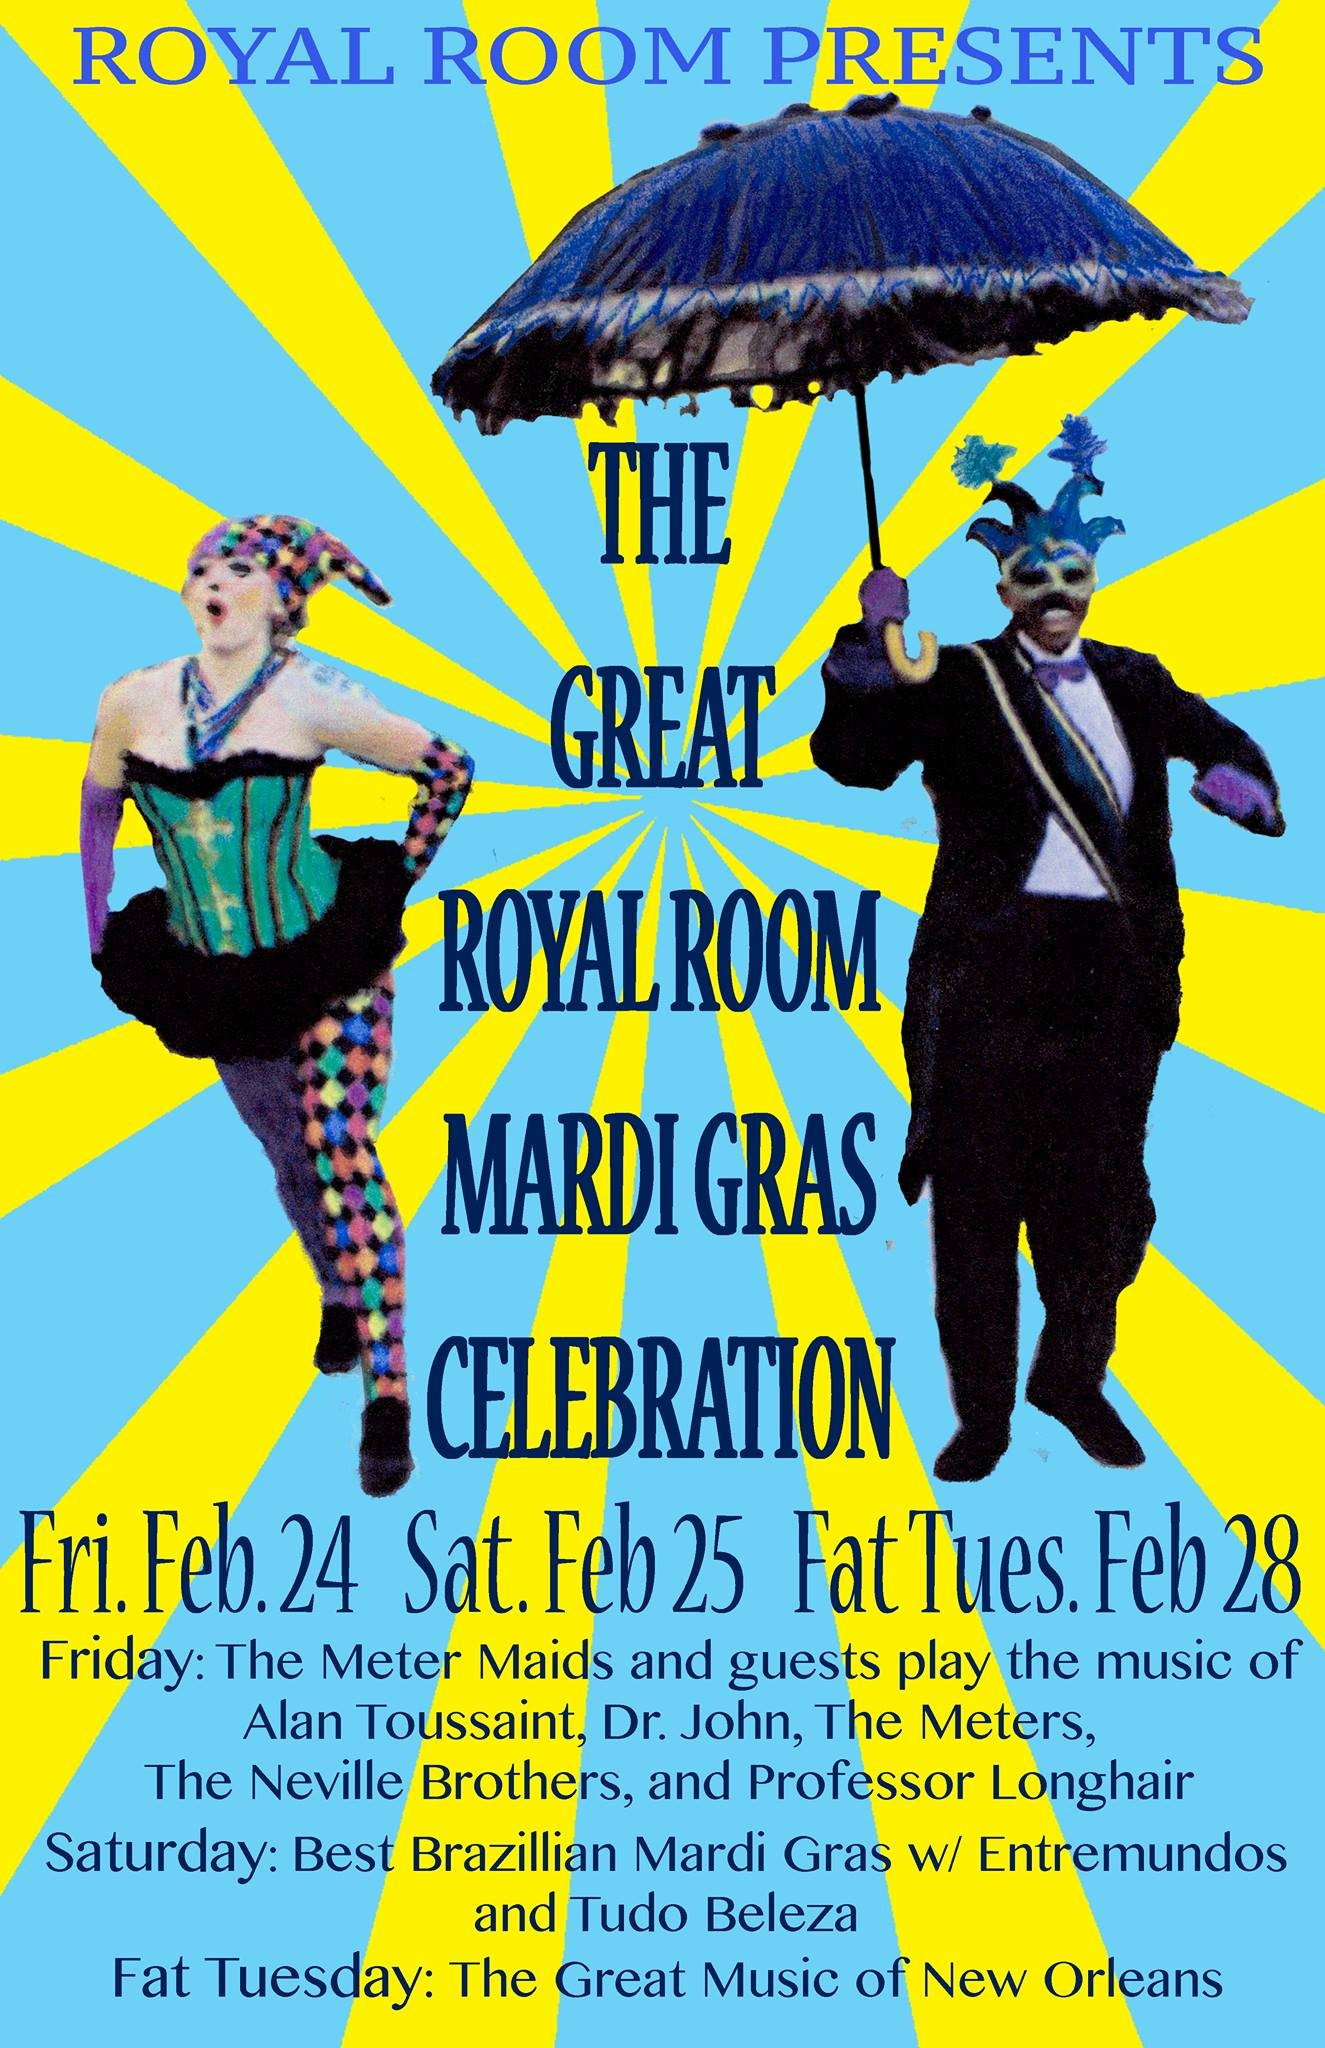 The Great Royal Room Mardi Gras Celebration The Meter